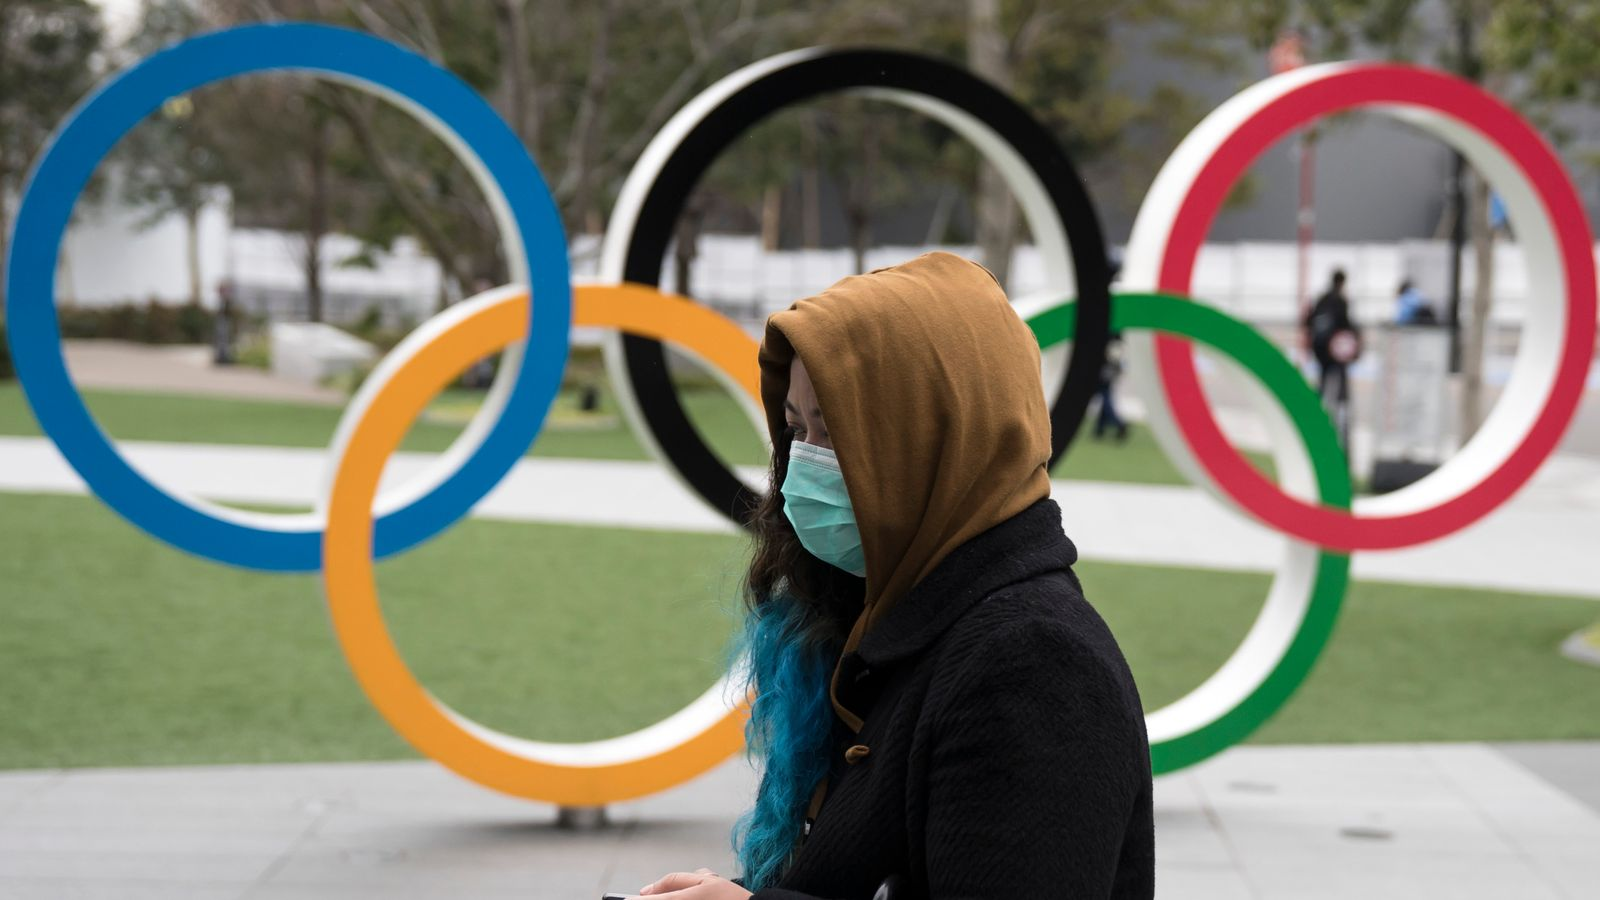 Coronavirus: Tokyo Olympics organisers facing 'real problems' as infections  continue   Olympics News   Sky Sports